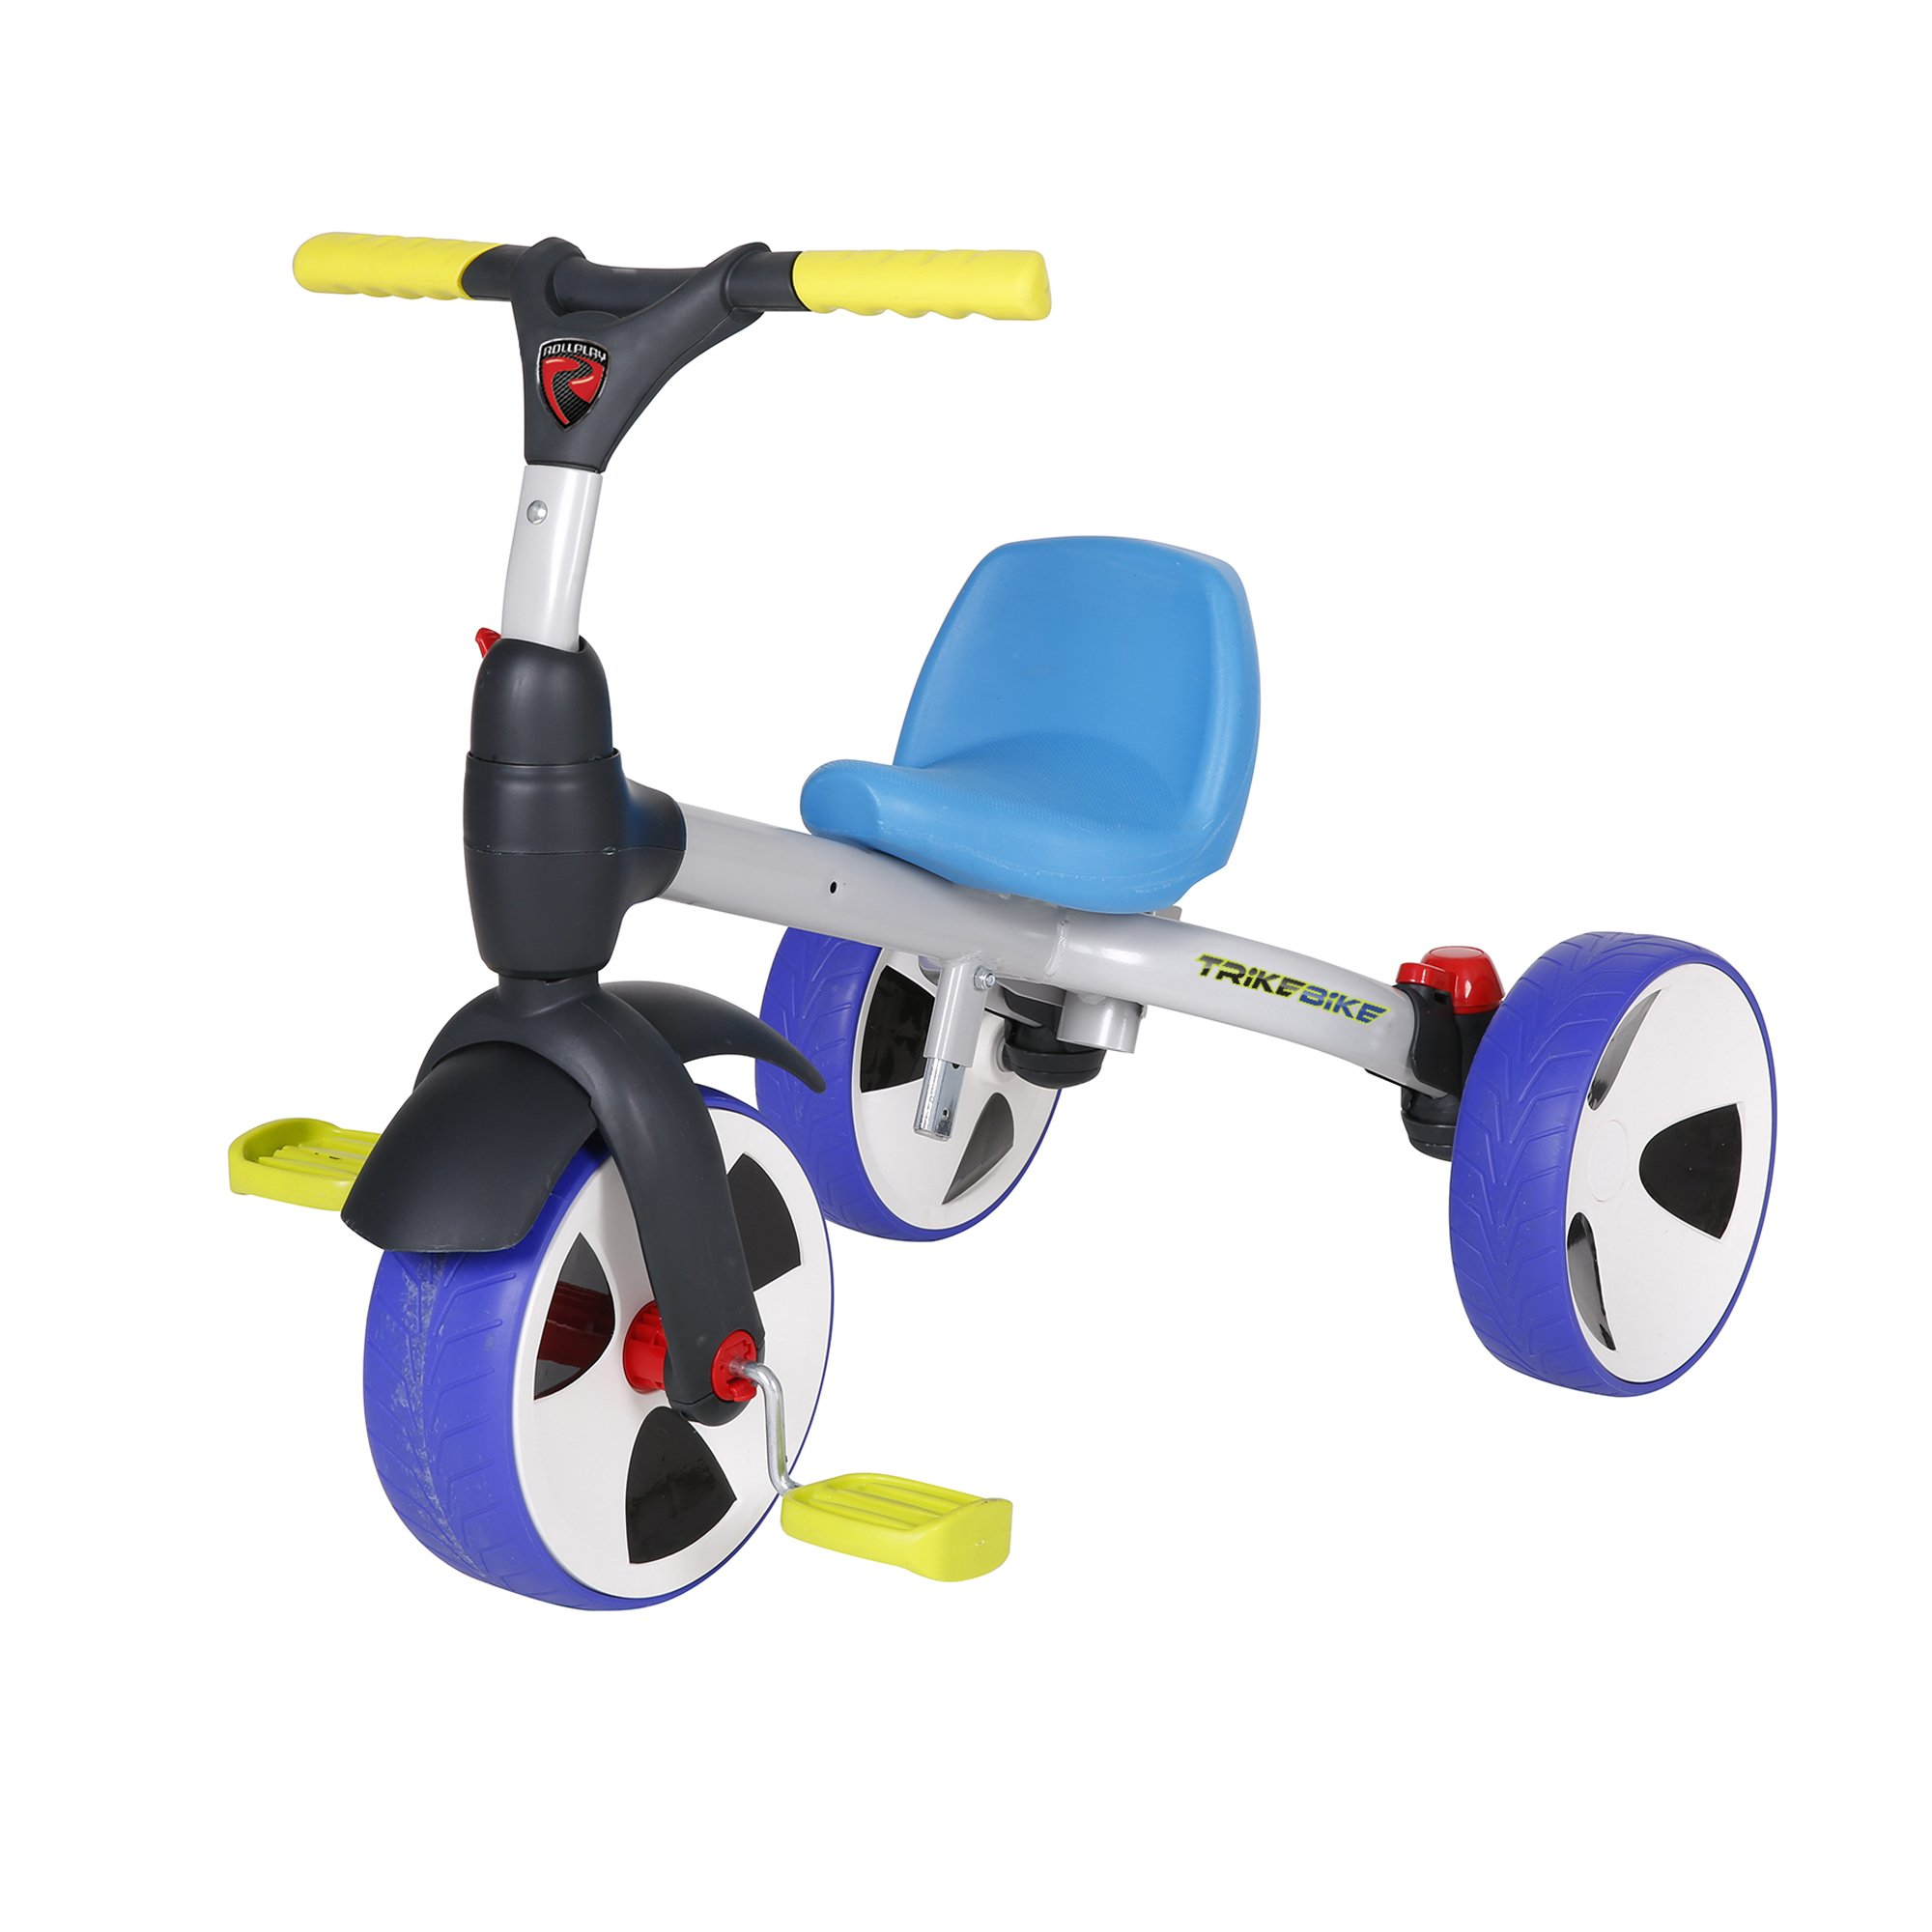 Rollplay 4-in-1 Convertible Trike Bike